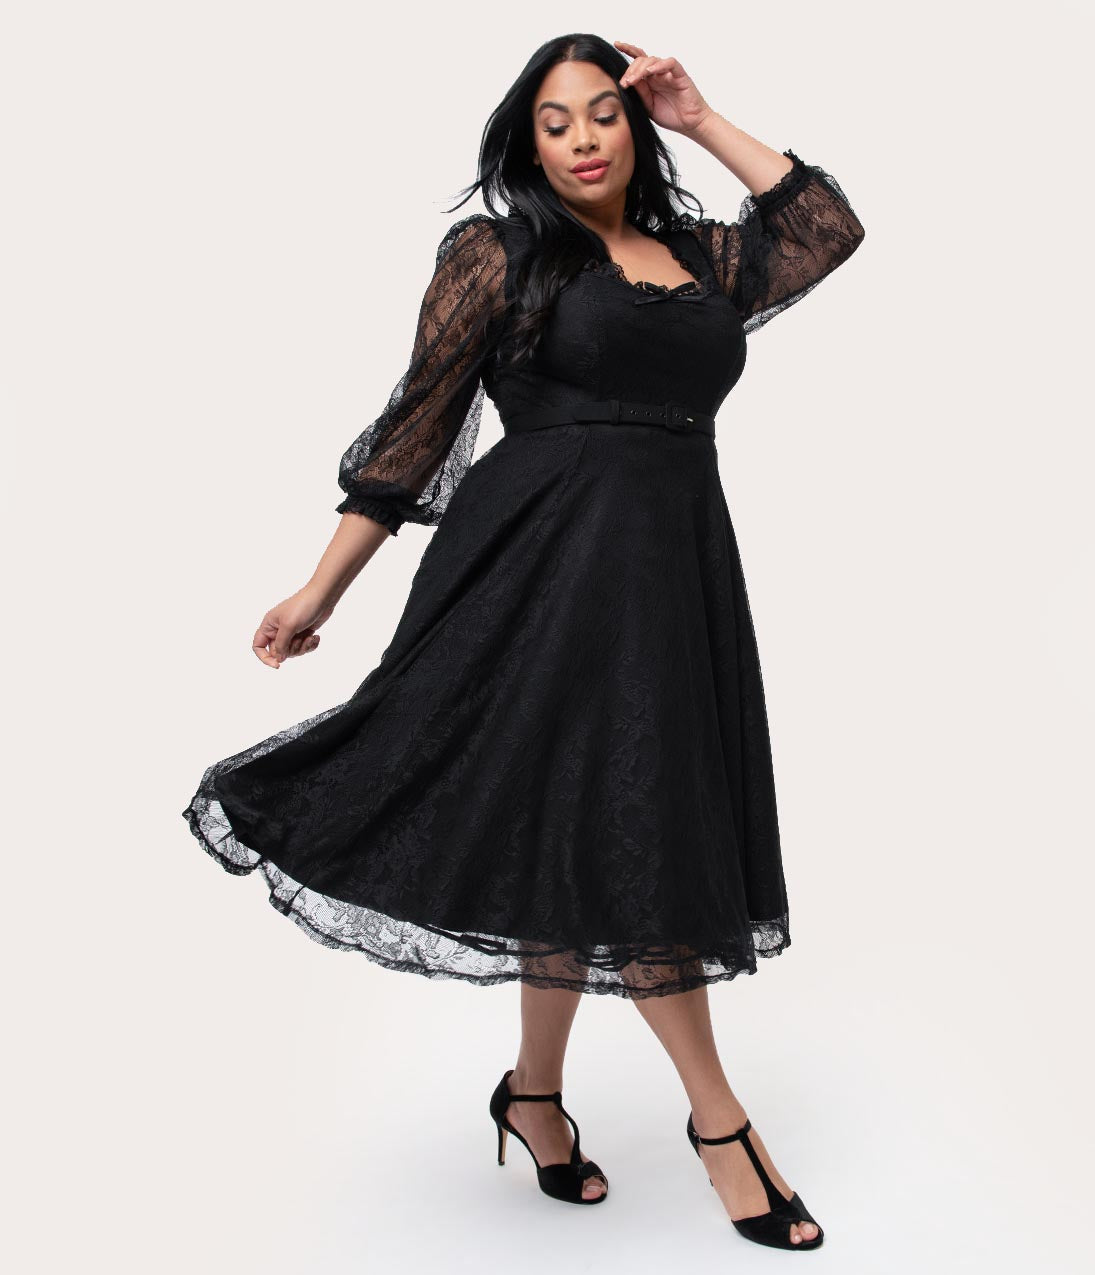 60s 70s Plus Size Dresses, Clothing, Costumes Vixen By Micheline Pitt Plus Size Black Lace Decadence Swing Dress $140.00 AT vintagedancer.com